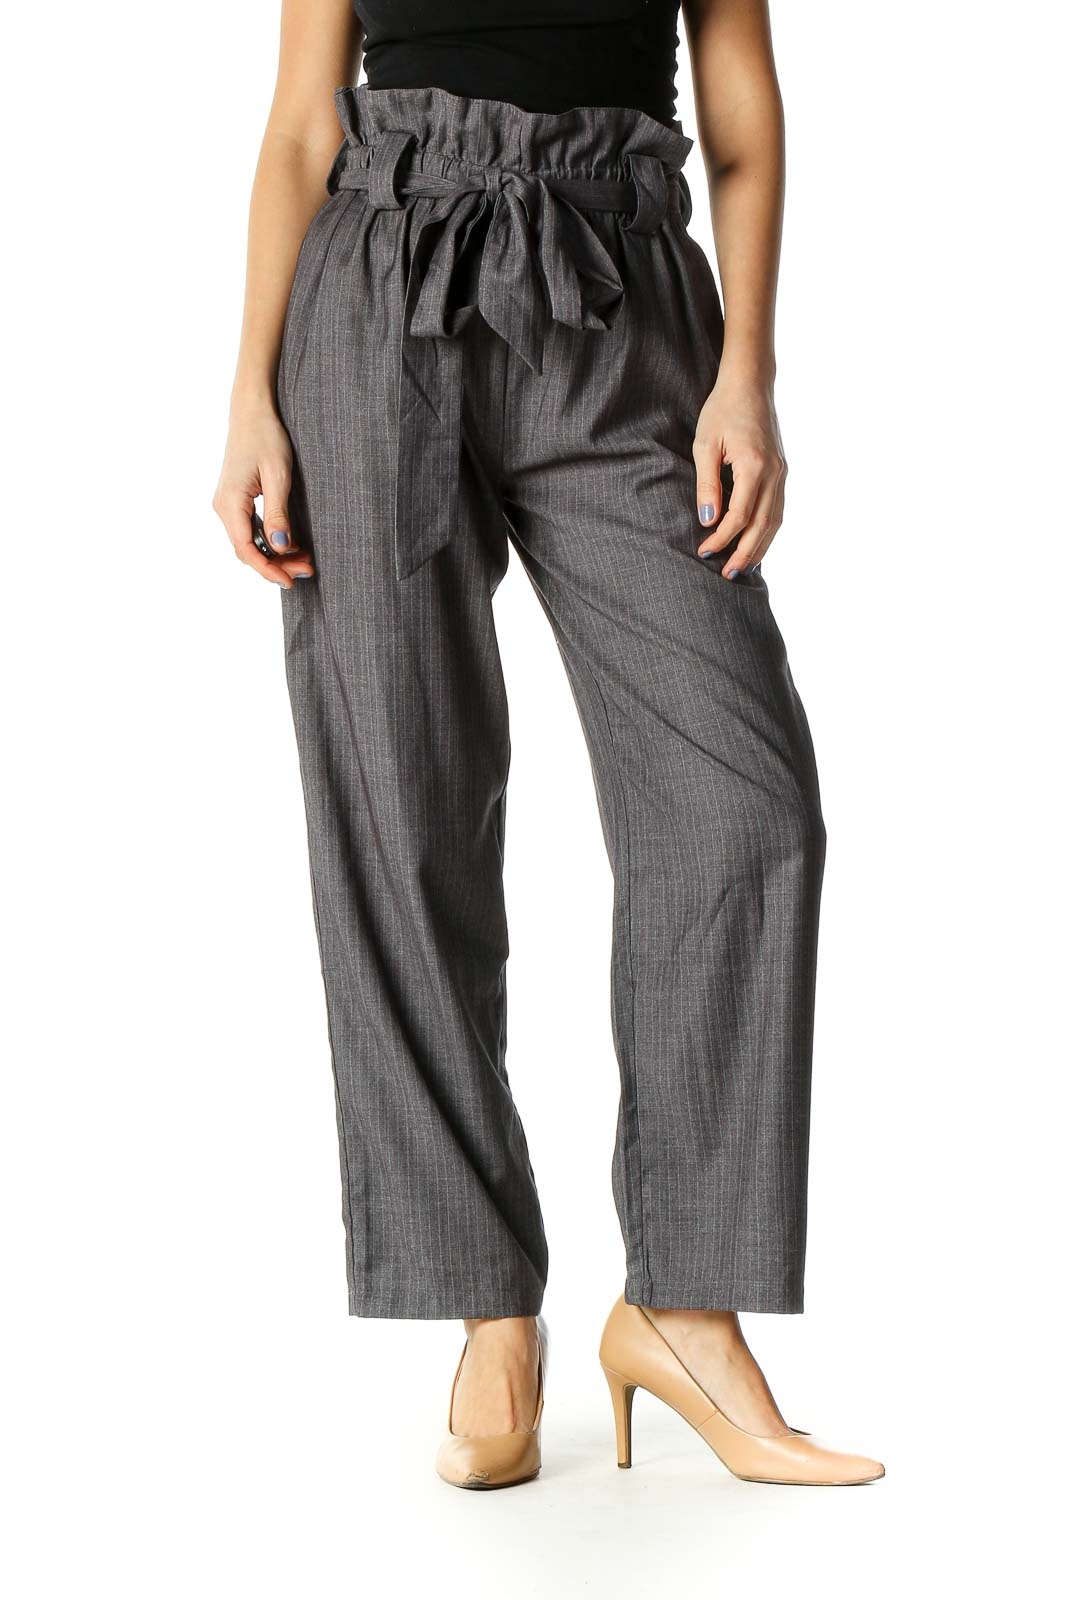 Gray Striped Casual Trousers Front